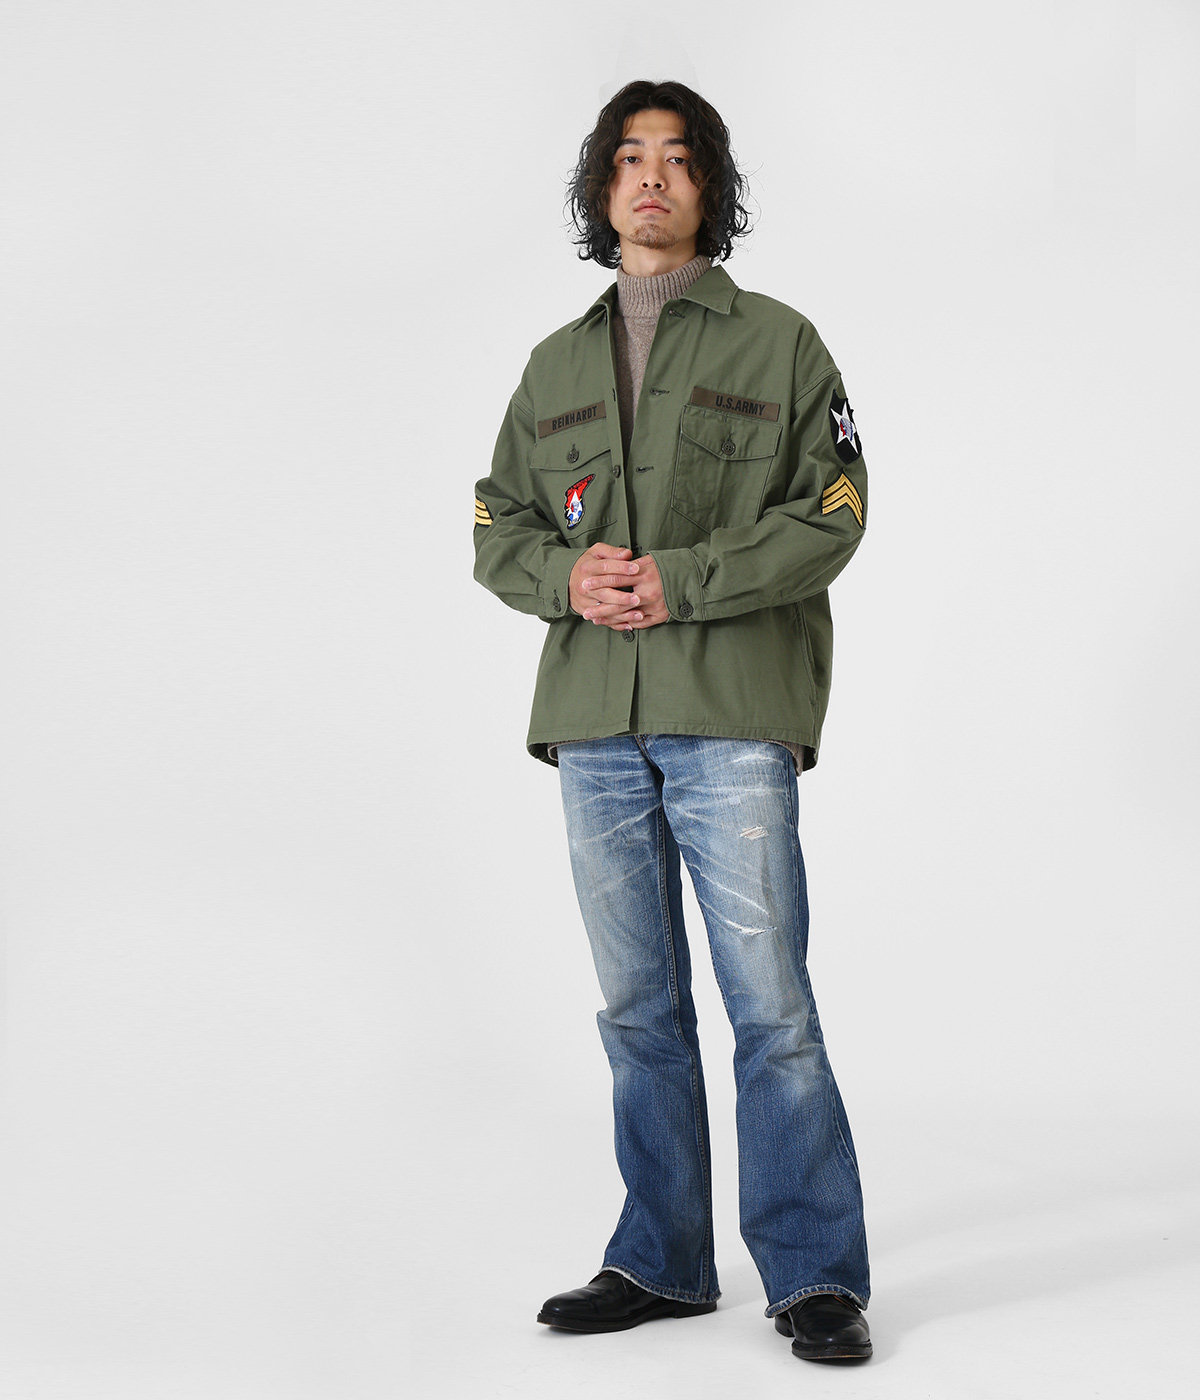 【ONLY ARK】別注 J.L. UTILITY SHIRT - ARKnets 25th anniversary MODEL -